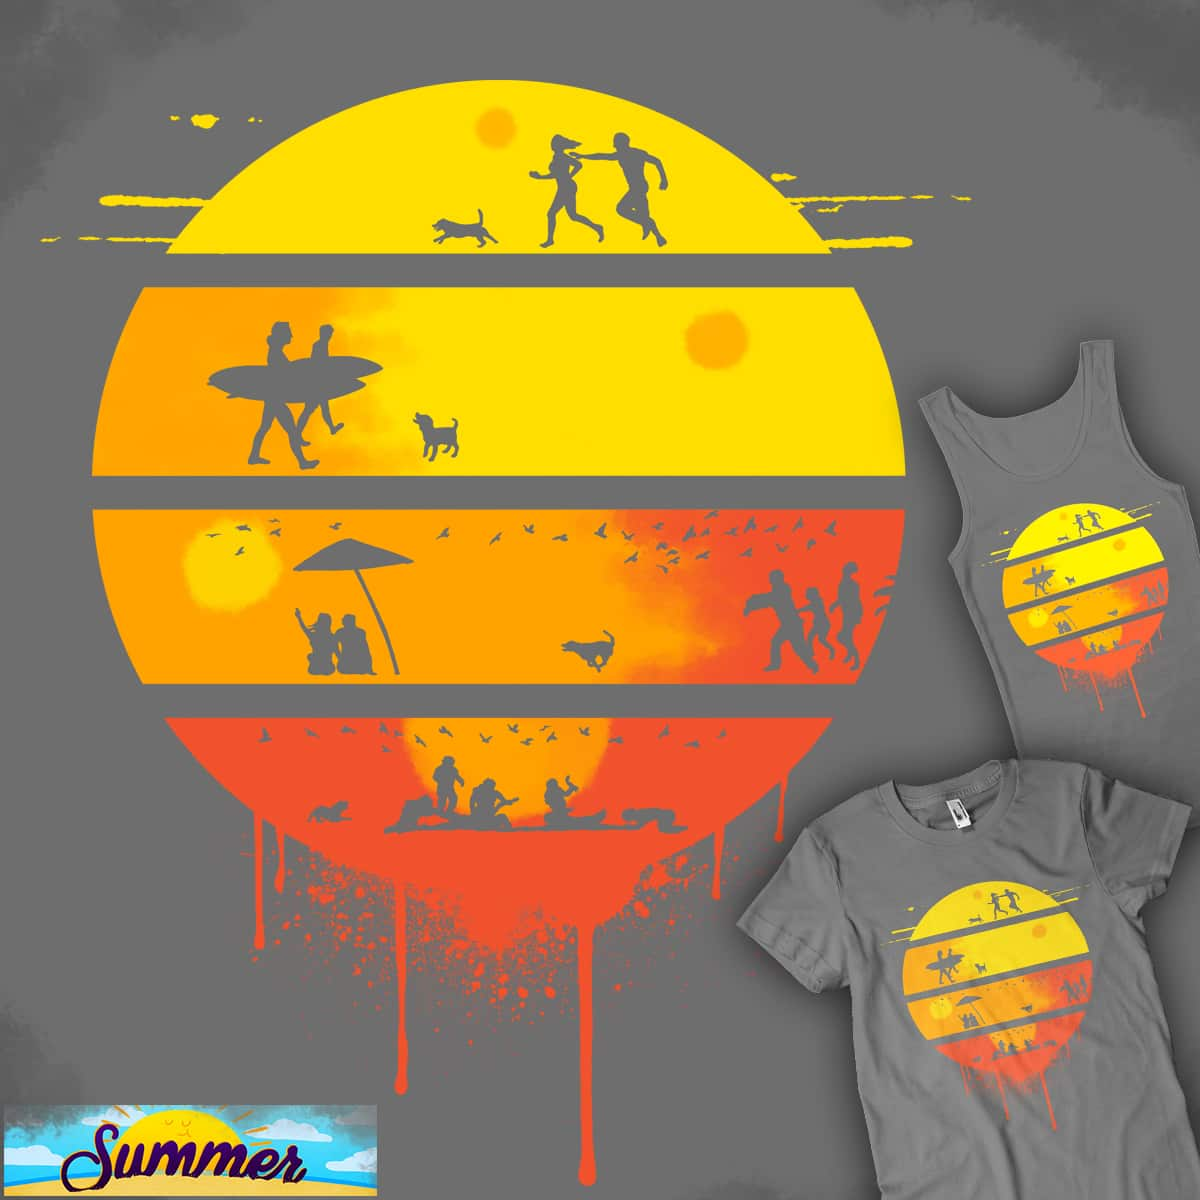 Summer Romance... No More! by kaizenkris on Threadless